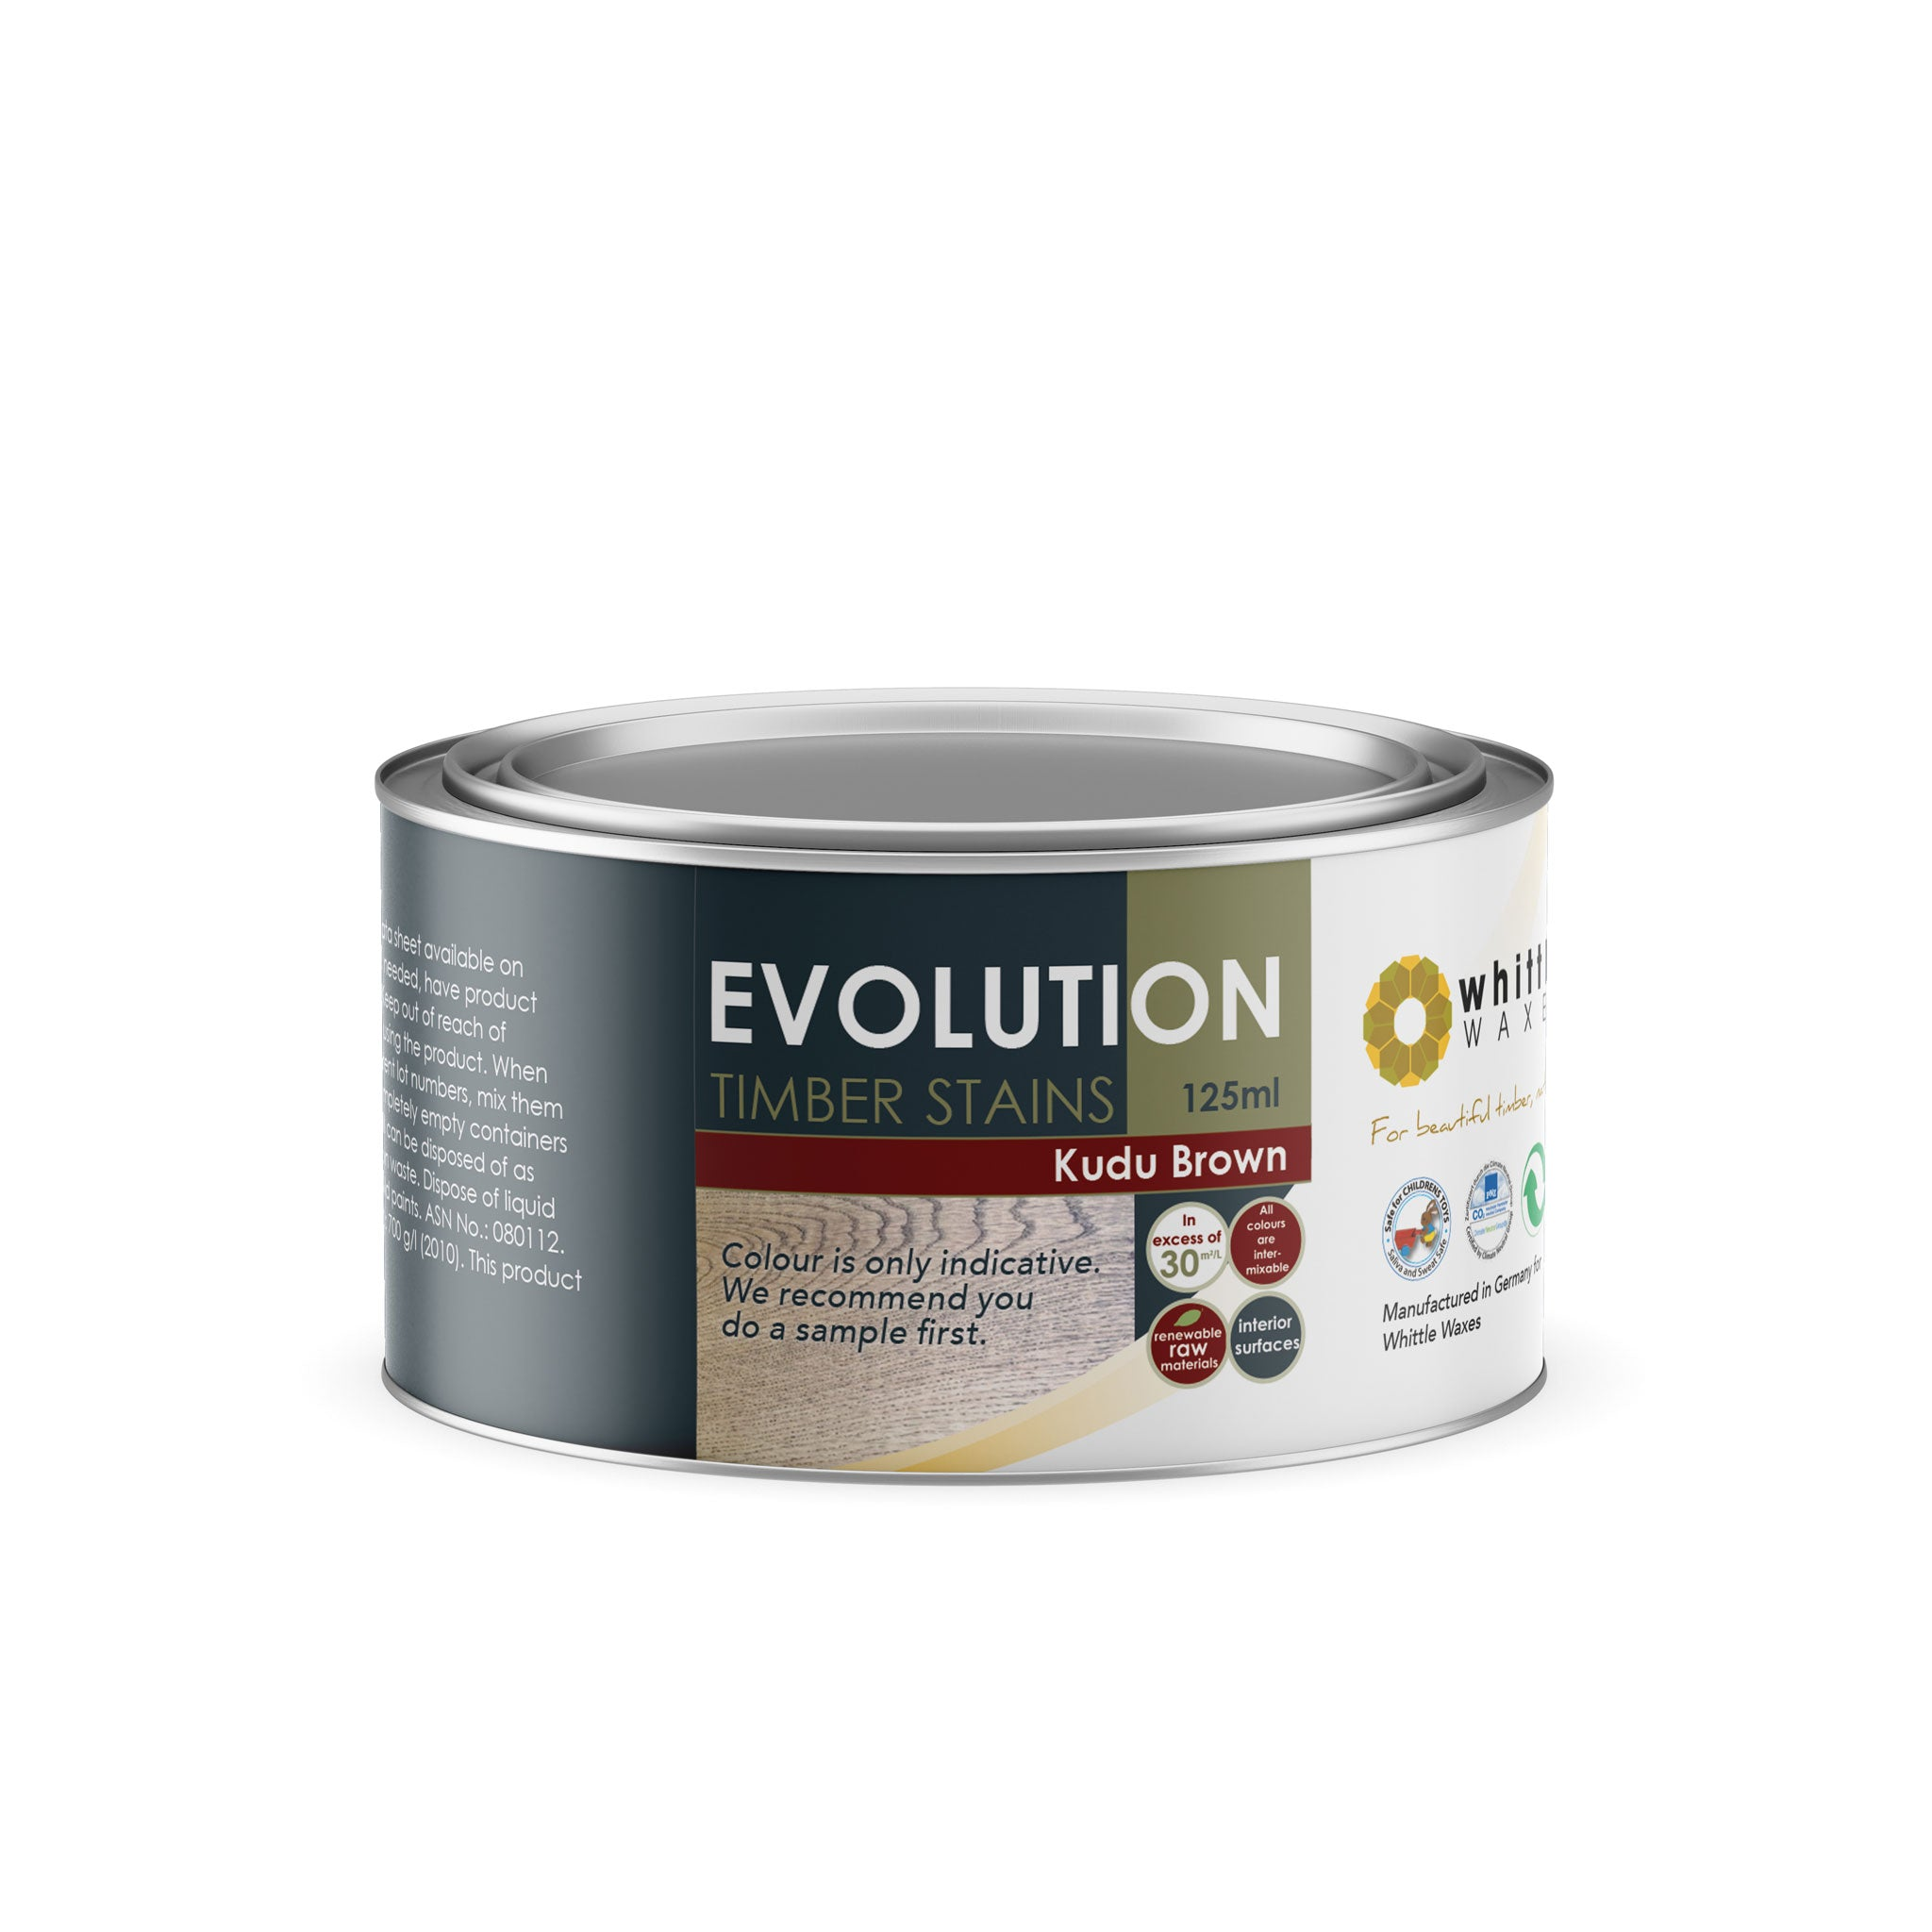 Whittle Waxes Evolution Colours (Kudu Brown) - quality timber stain - 125ml